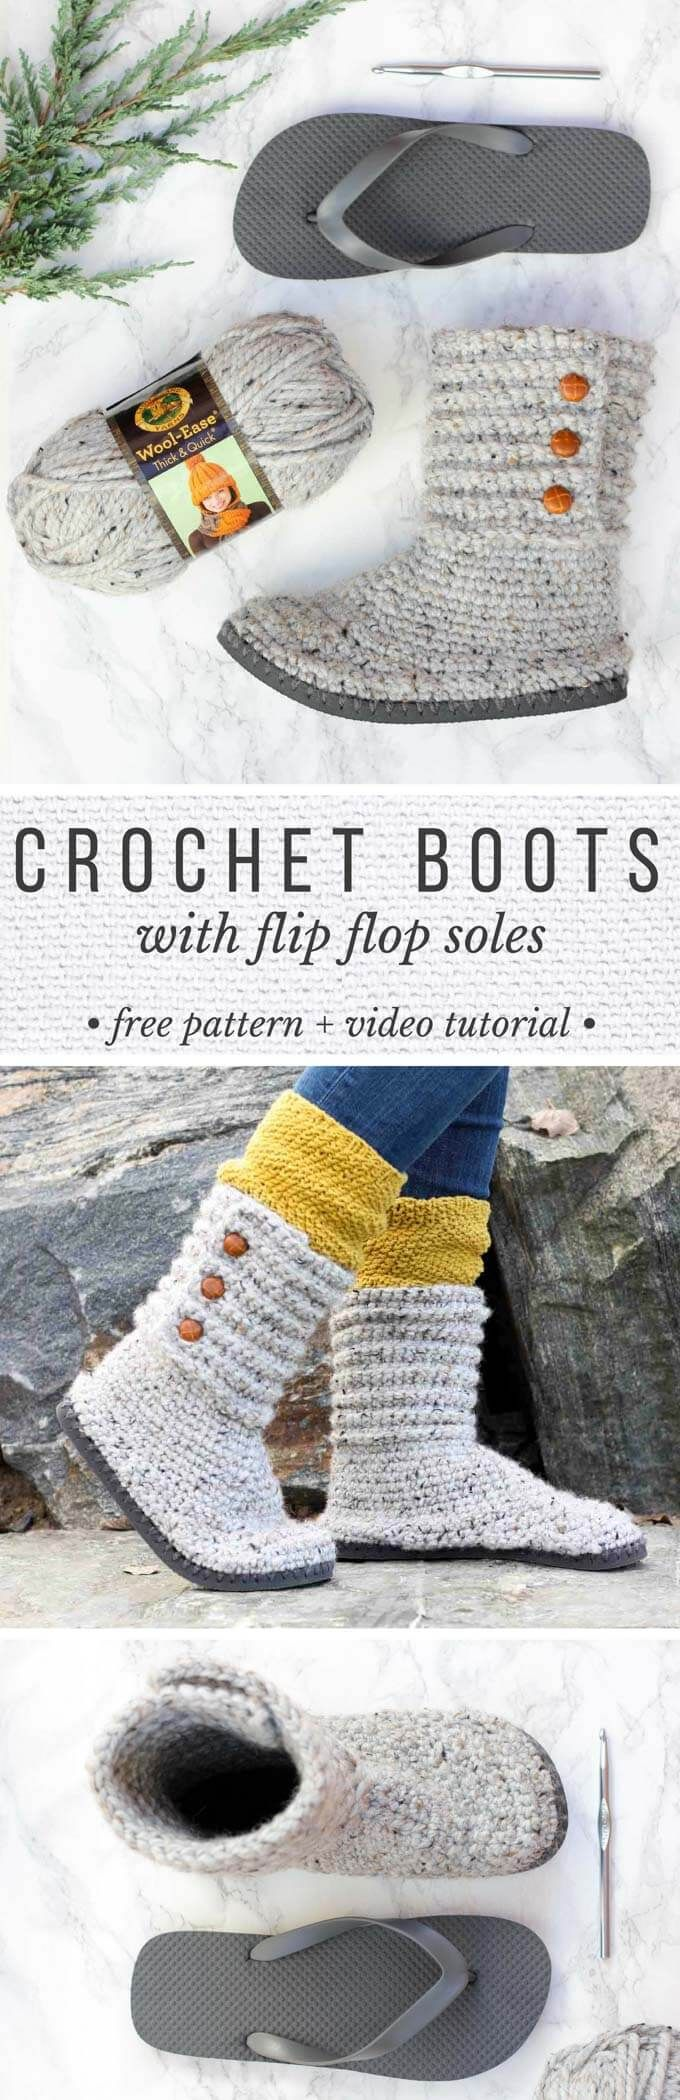 Best 25 crochet slipper boots ideas on pinterest crochet boots how to crochet boots with flip flops free pattern video tutorial bankloansurffo Image collections